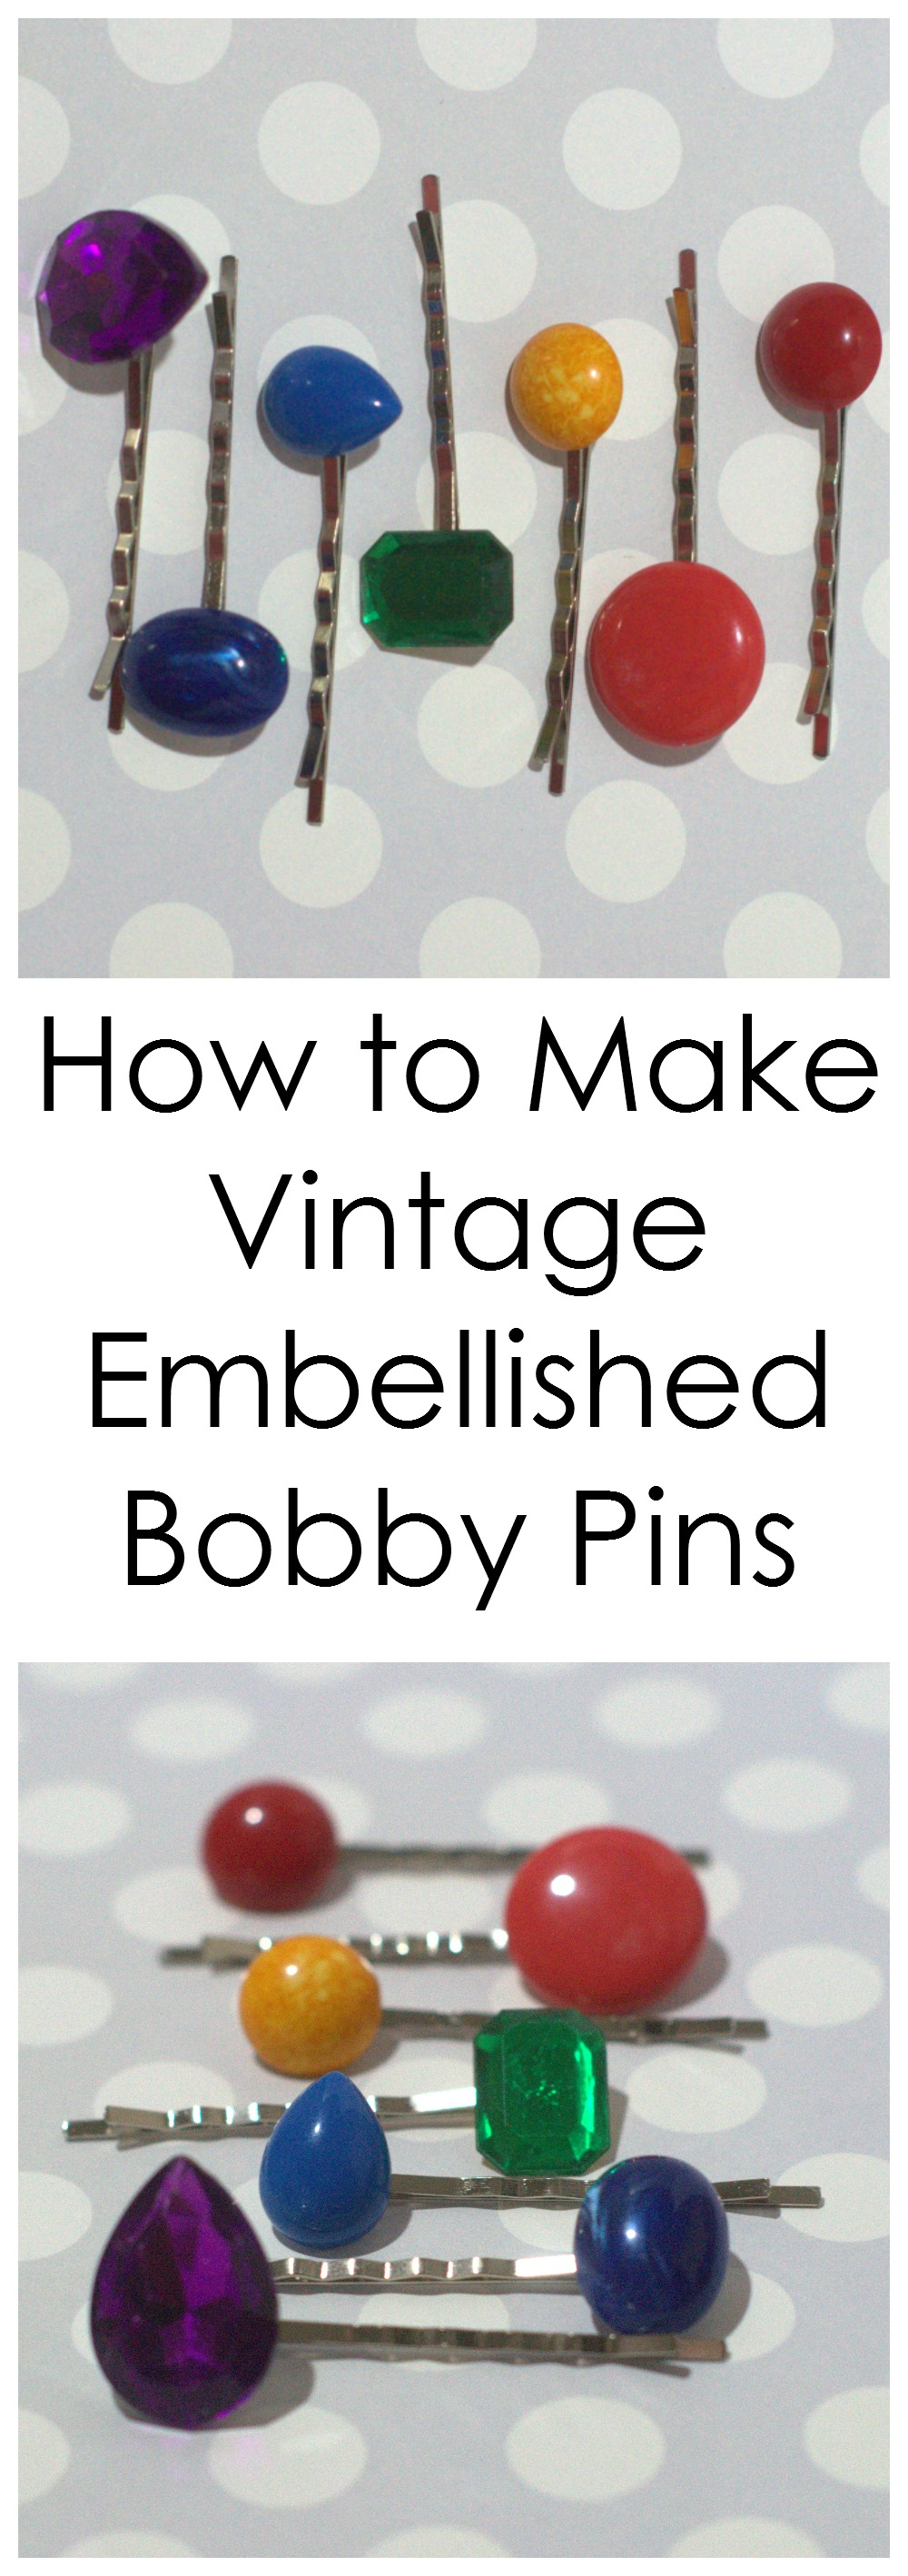 How to make vintage embellished bobby pins